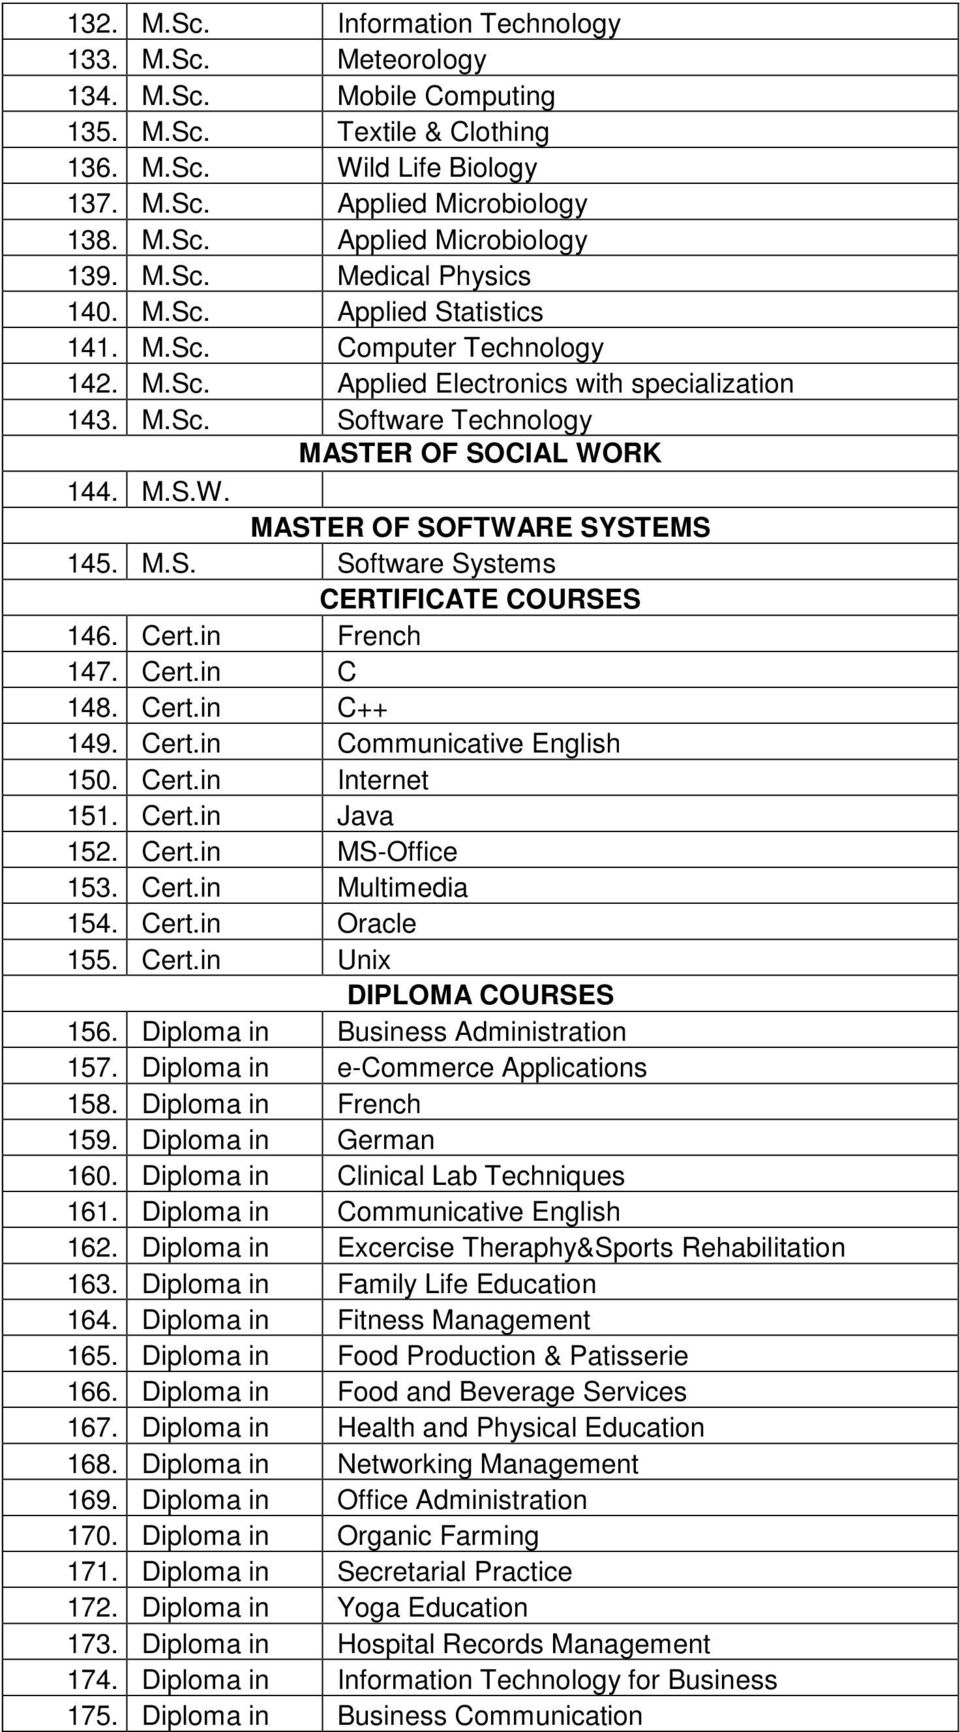 RK 144. M.S.W. MASTER OF SOFTWARE SYSTEMS 145. M.S. Software Systems CERTIFICATE COURSES 146. Cert.in French 147. Cert.in C 148. Cert.in C++ 149. Cert.in Communicative English 150. Cert.in Internet 151.